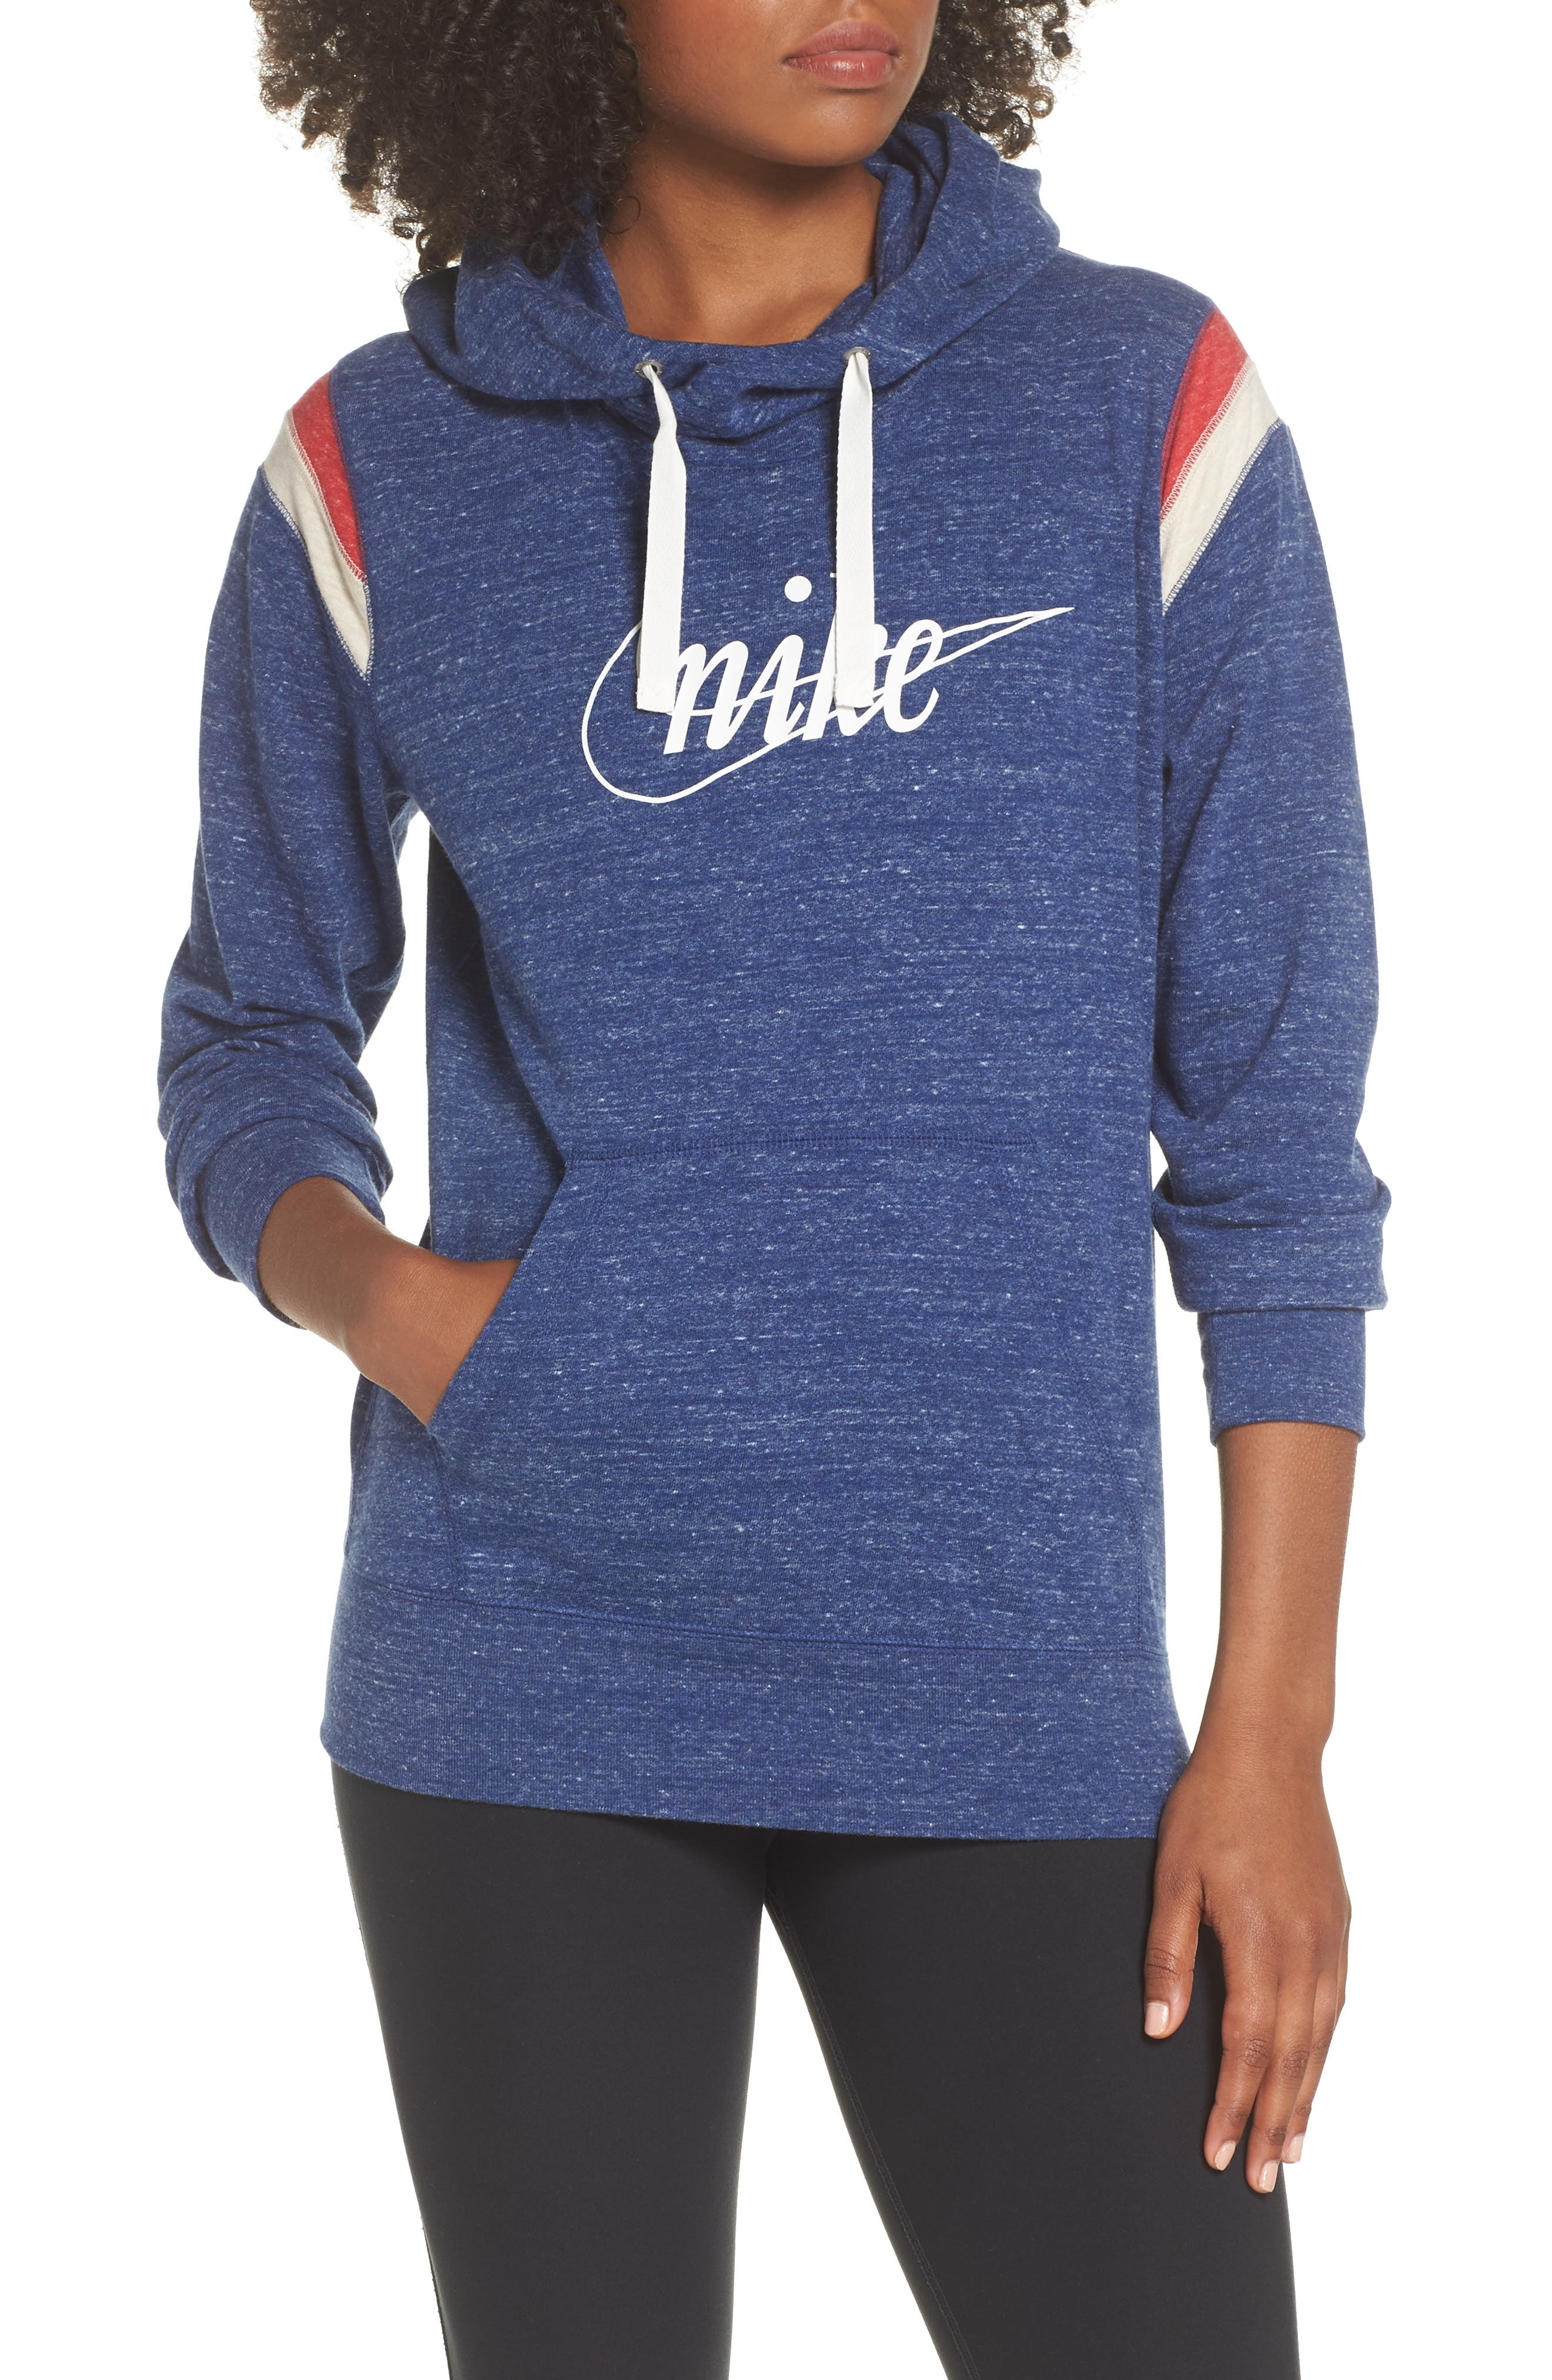 Sportswear Vintage Gym Hoodie,                             Main thumbnail 1, color,                             BLUE VOID/ SAIL